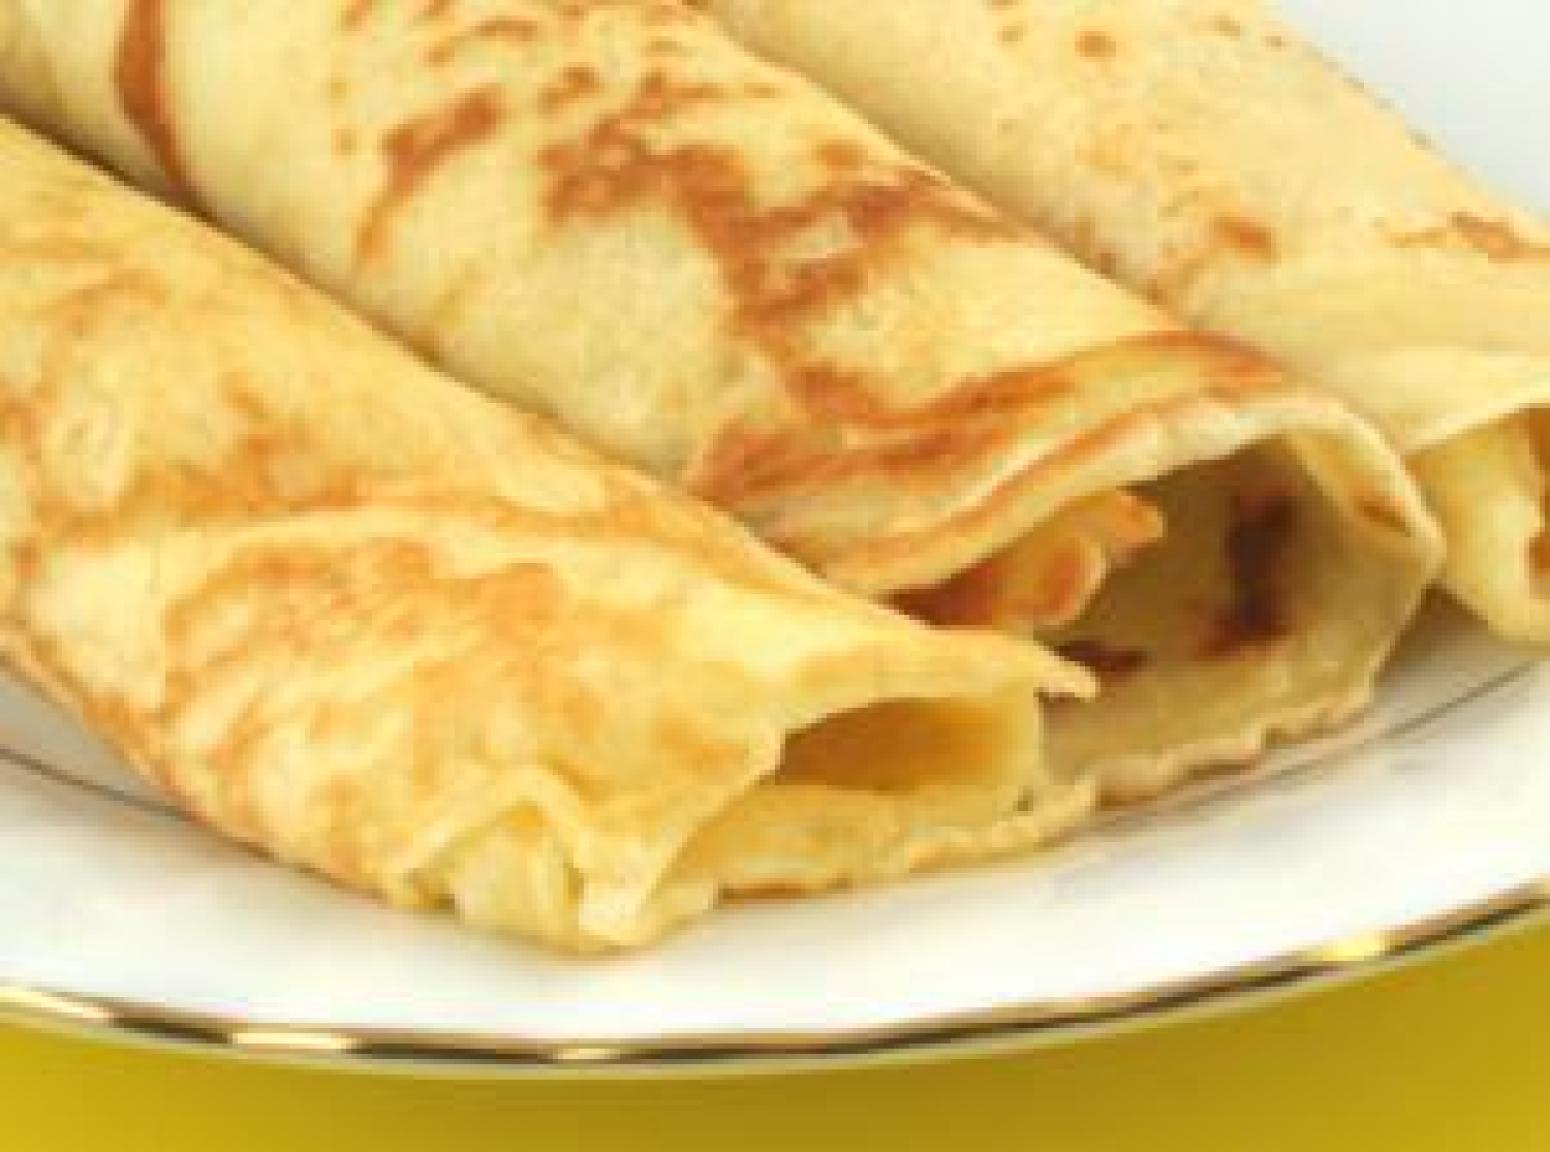 Gluten free crepes Recipe 2 | Just A Pinch Recipes